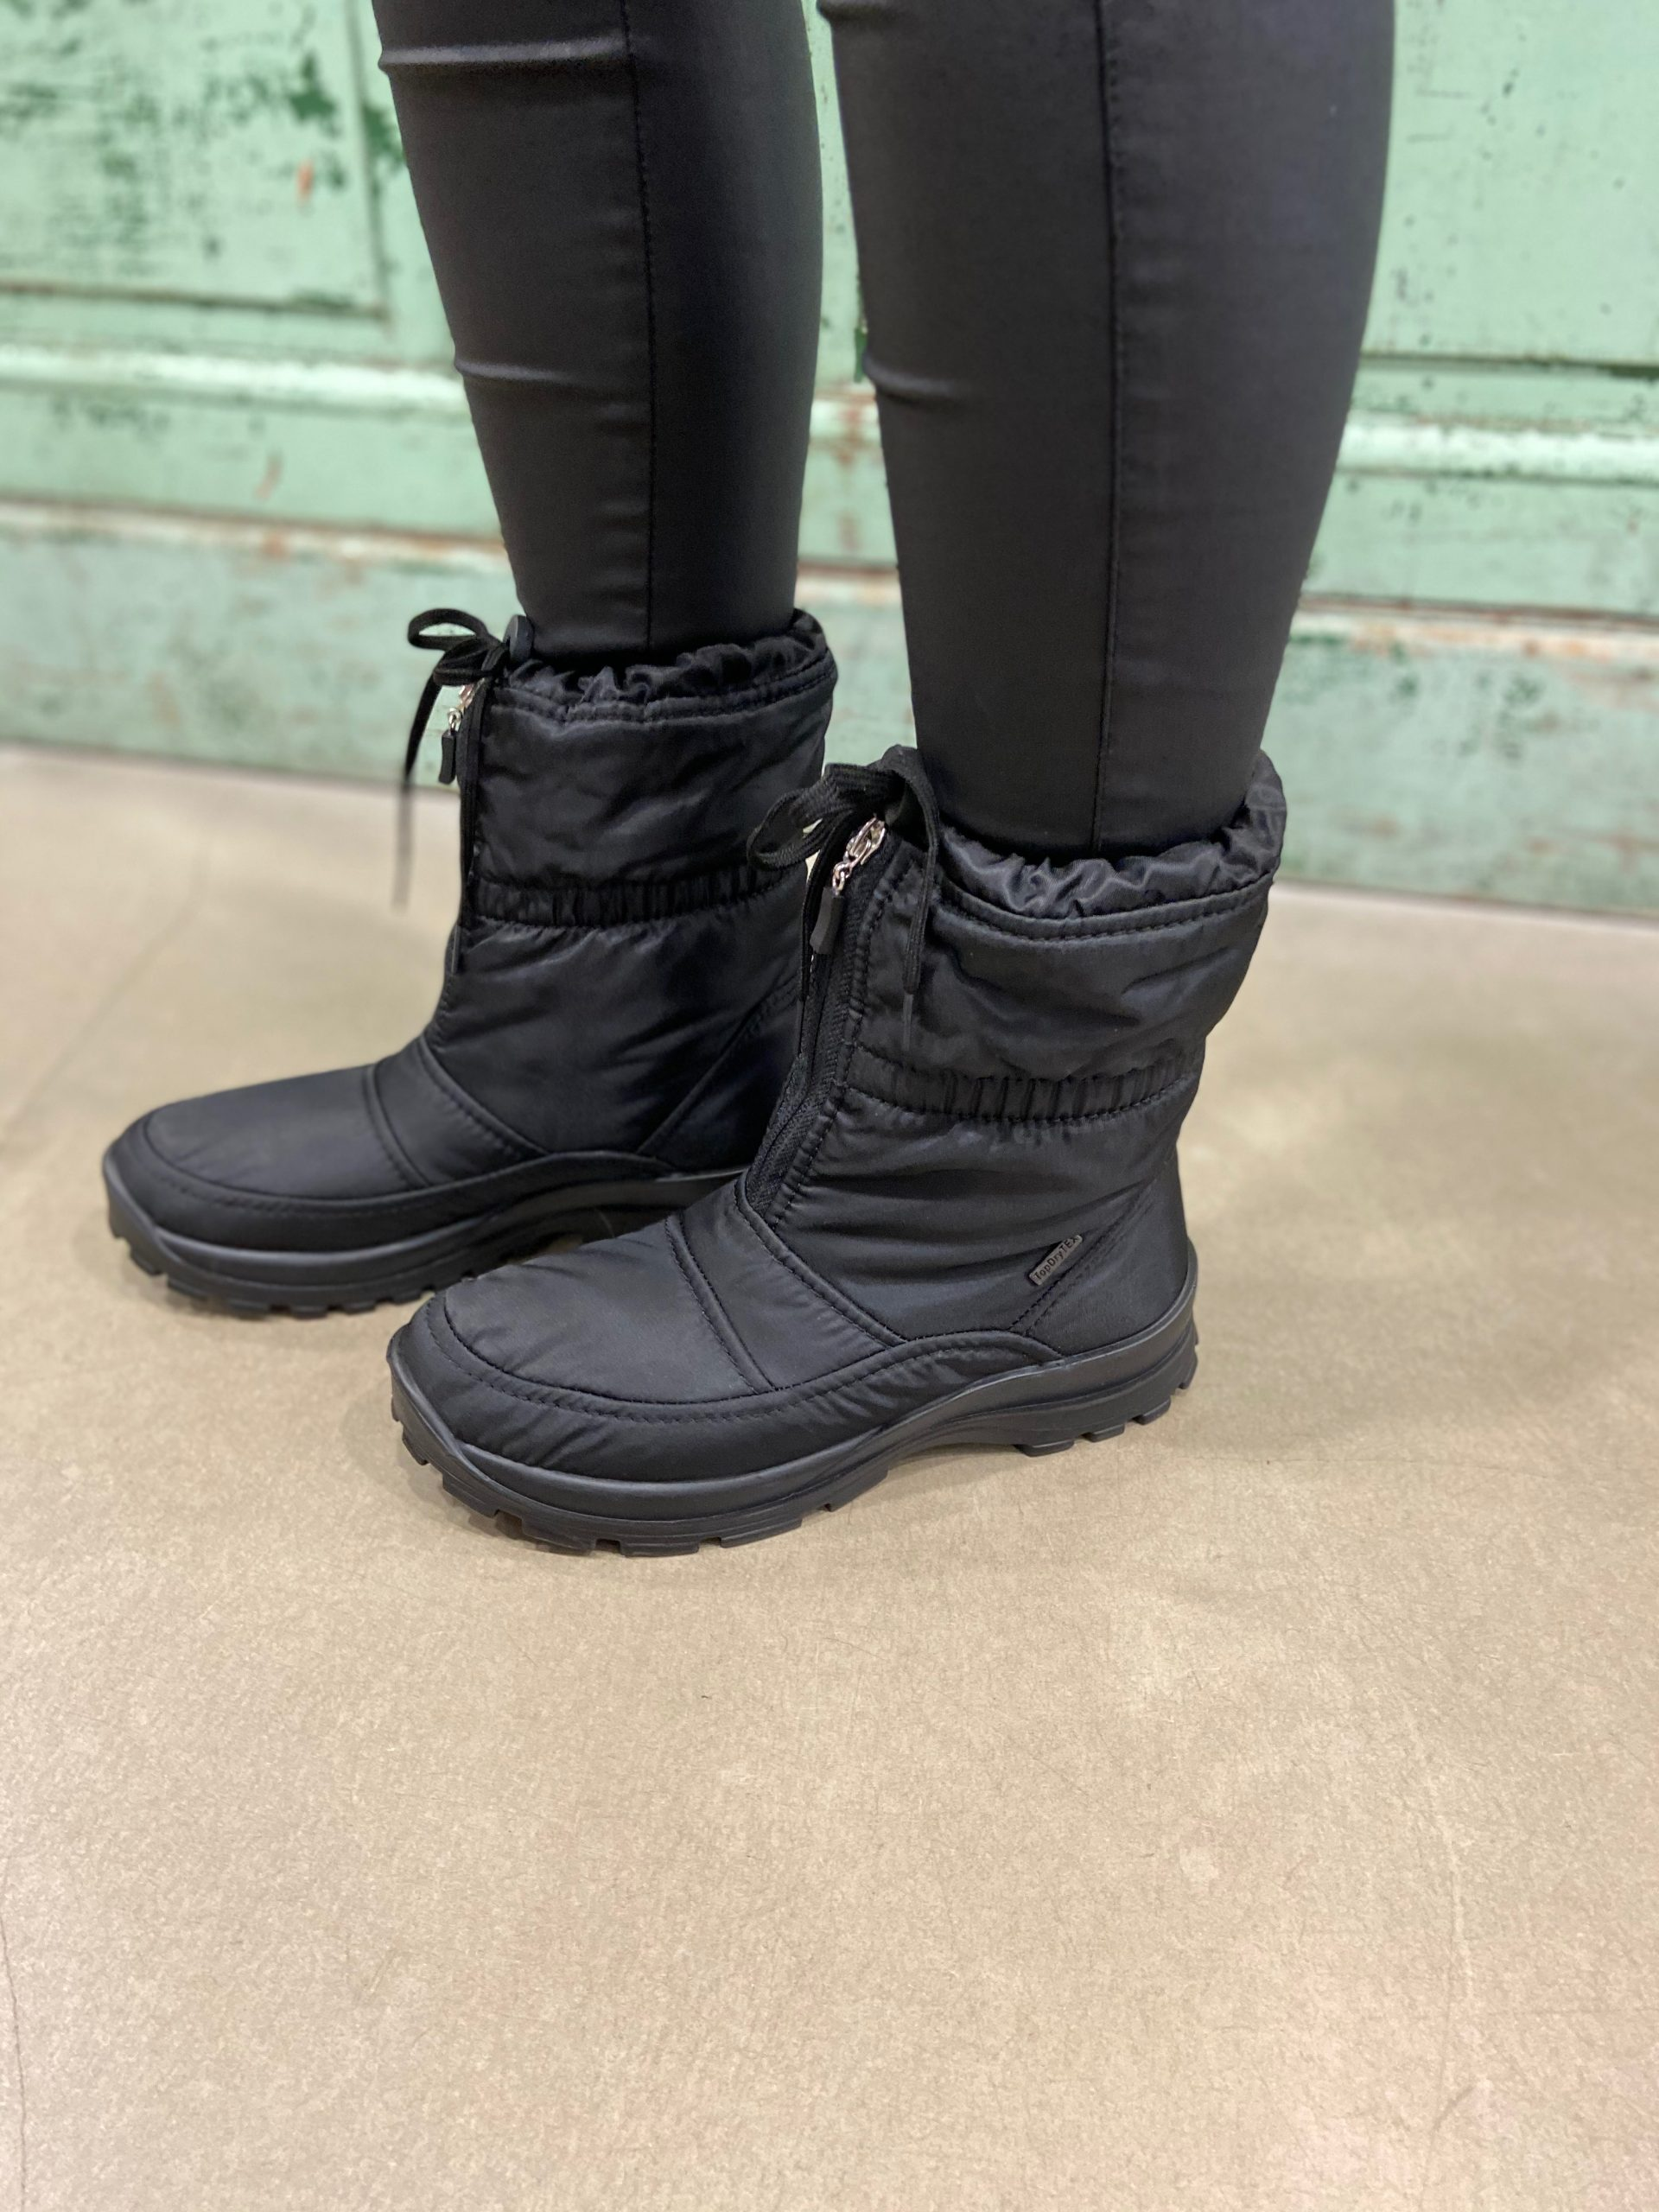 Waterproof Boots For All The Family!